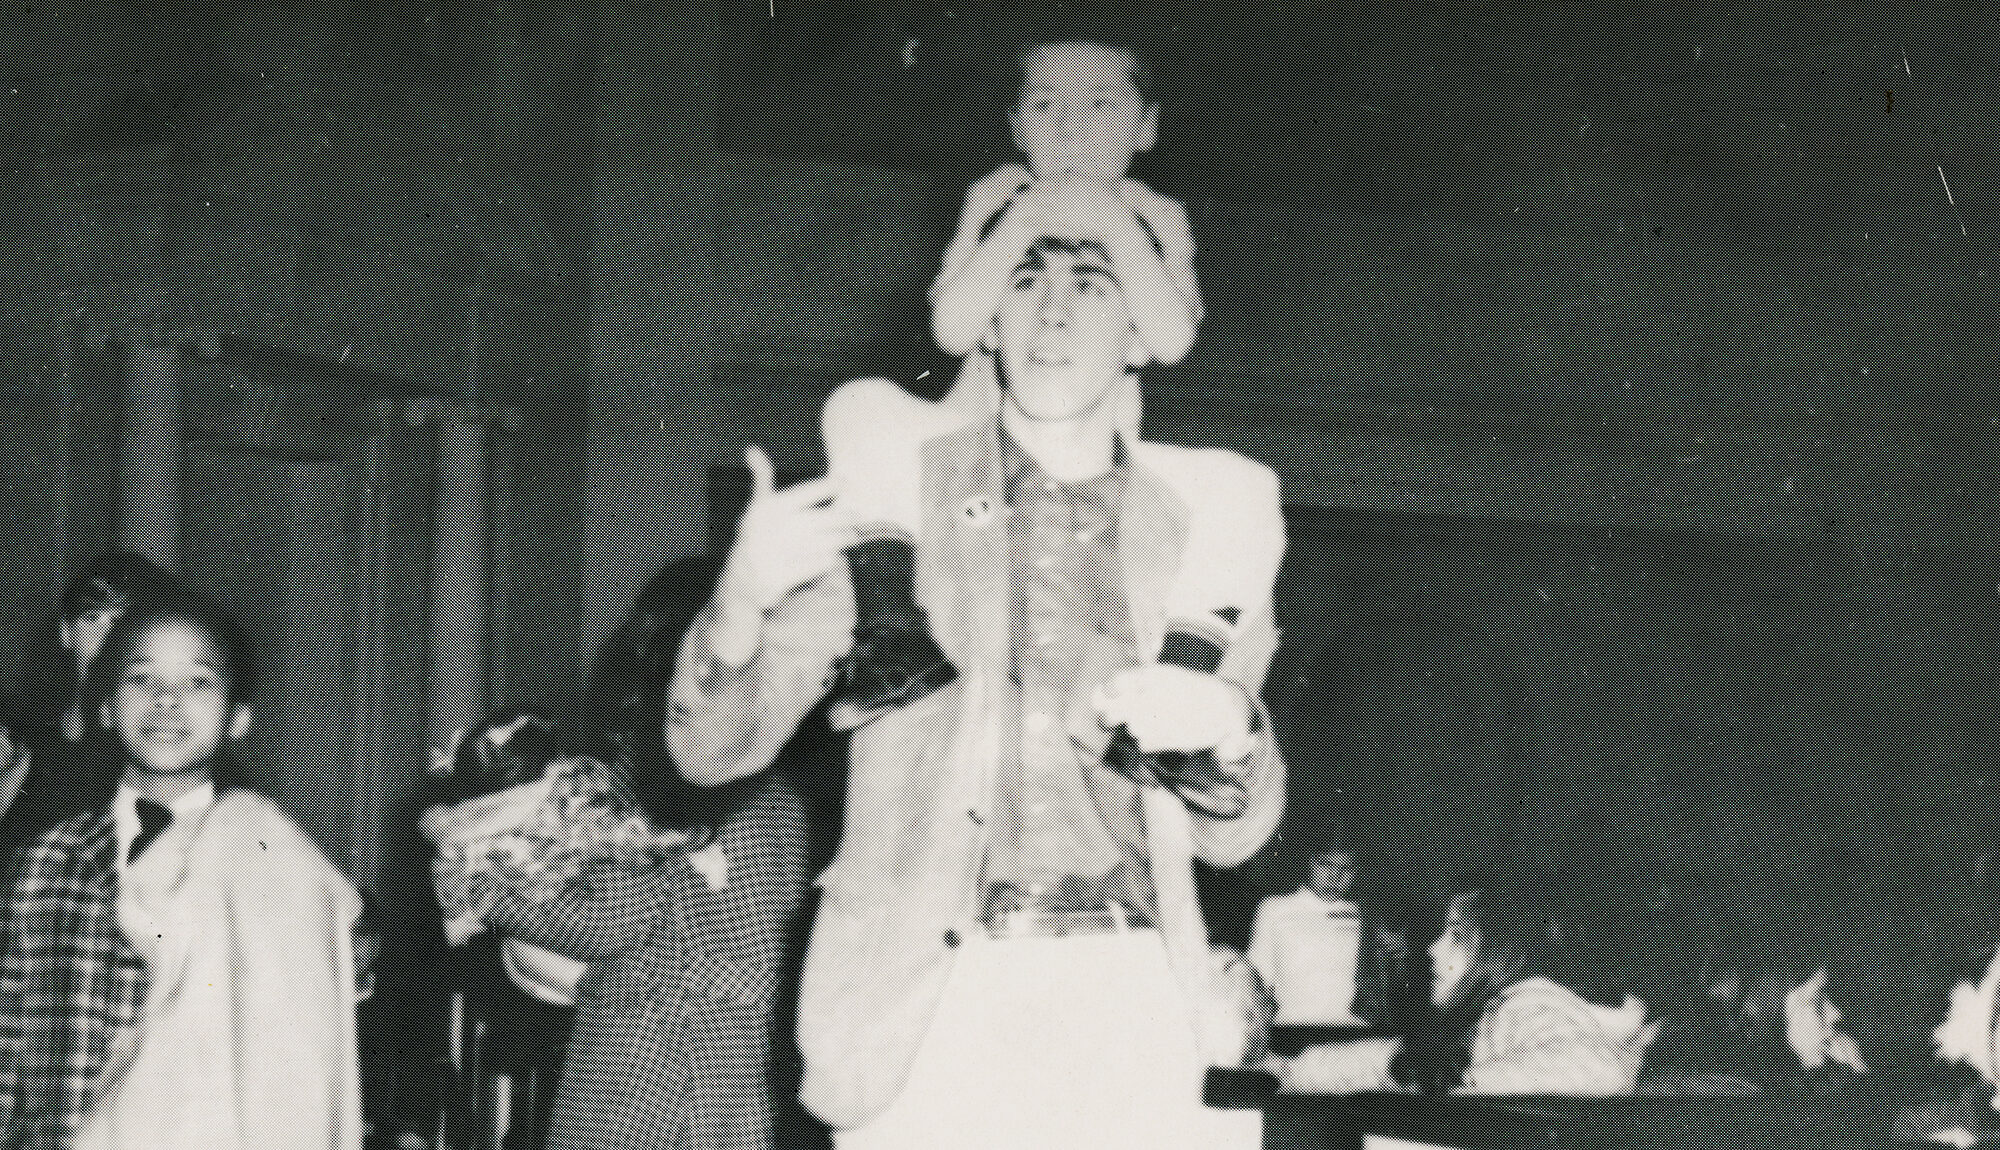 Man walking with child sitting on his shoulders